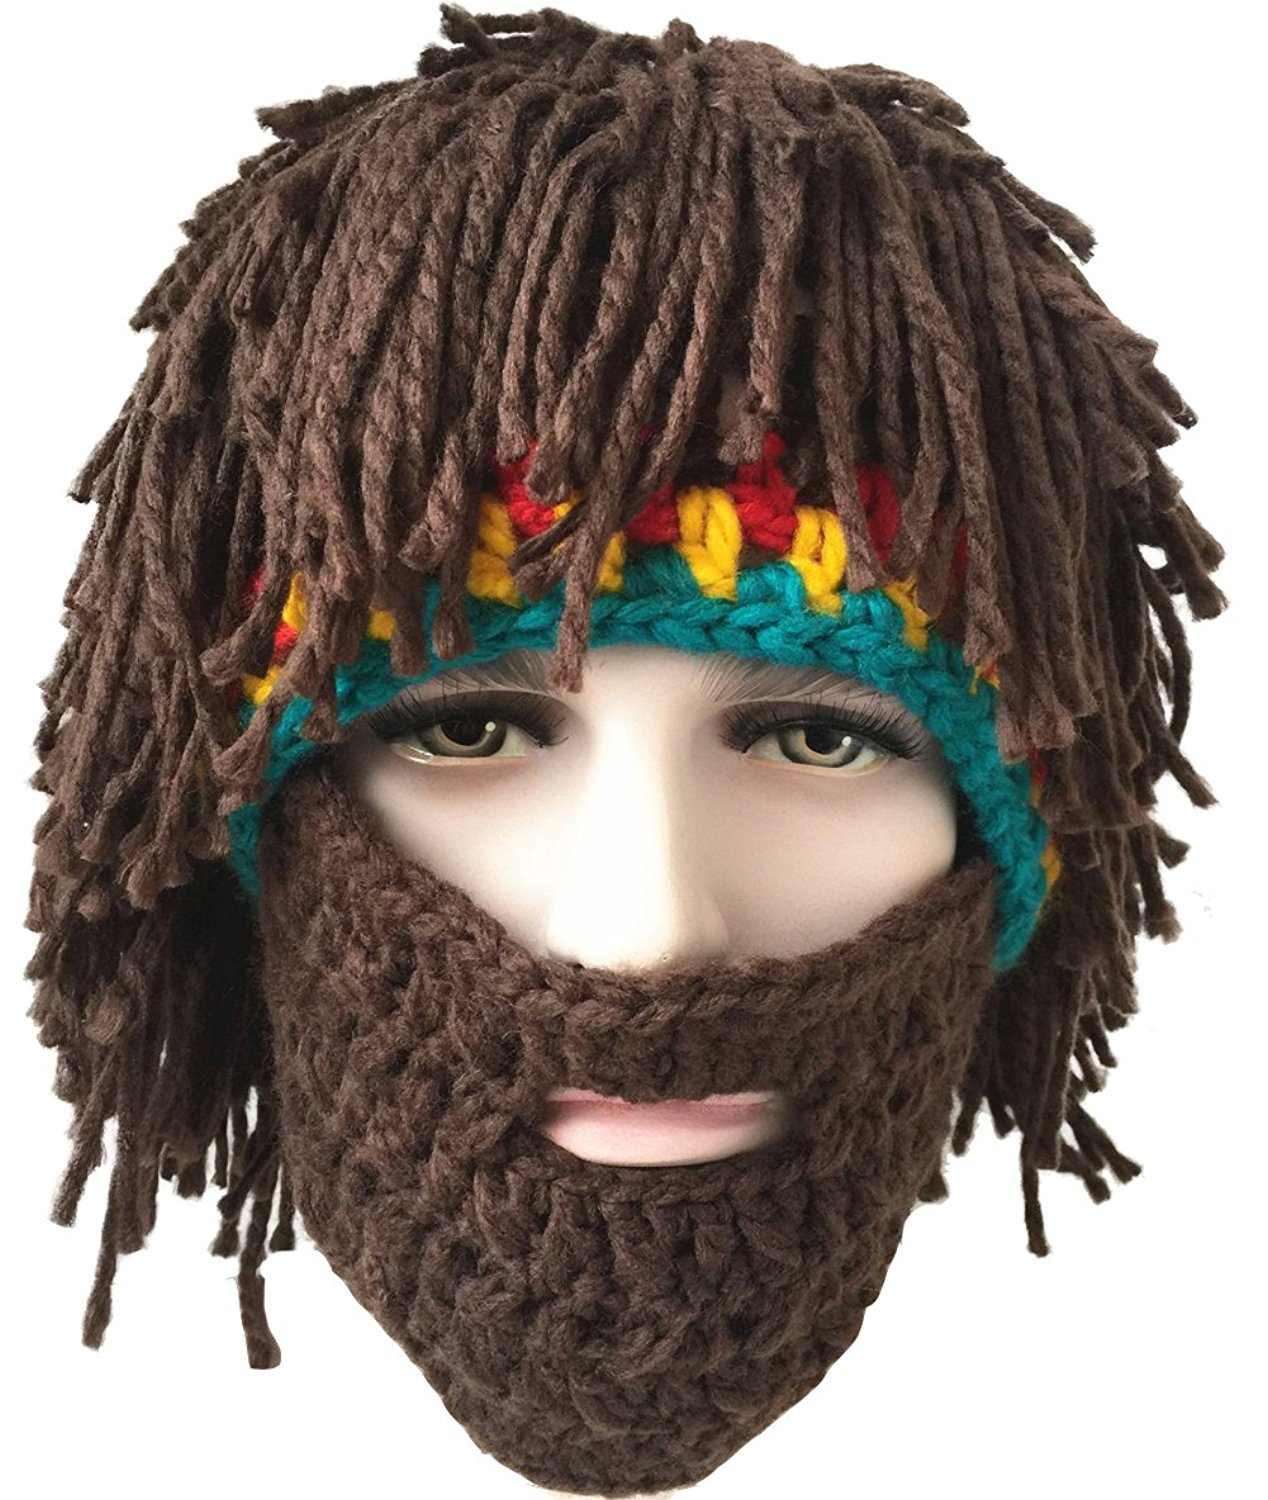 61805fae6d4 Get Quotations · SeptCity Handmade Bearded Face Mask Beanie Hat Costume  Party Cap